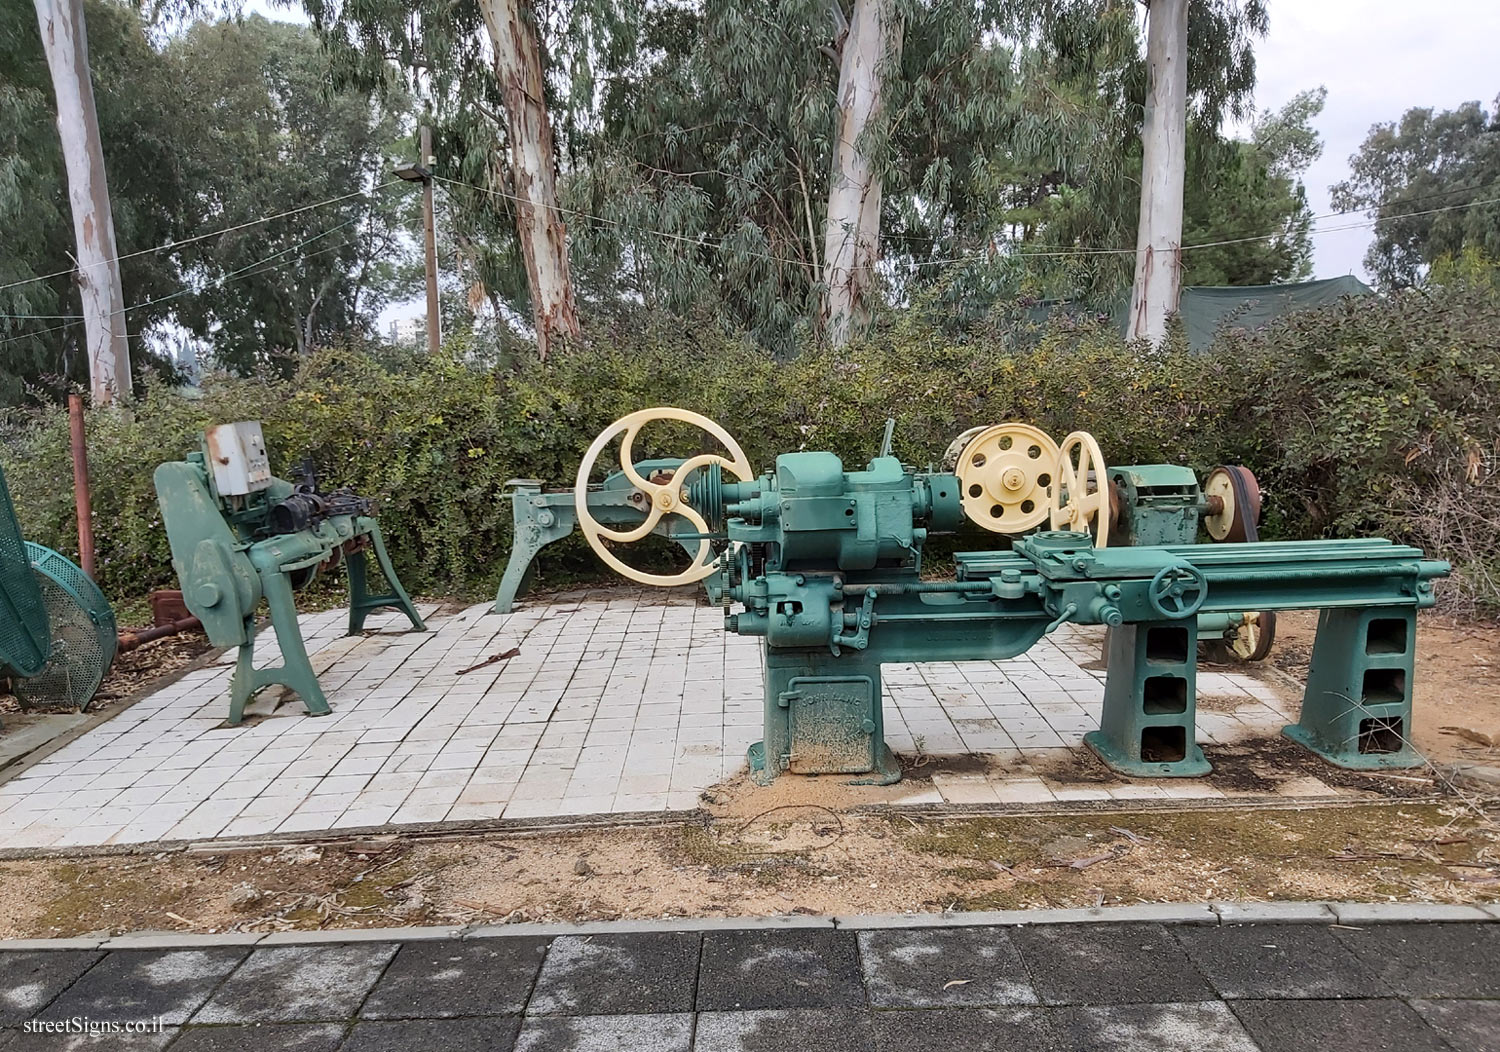 Rehovot - Heritage Sites in Israel - Ayalon Institute - The machines for making weapons - David Fikes St 1, Rehovot, Israel